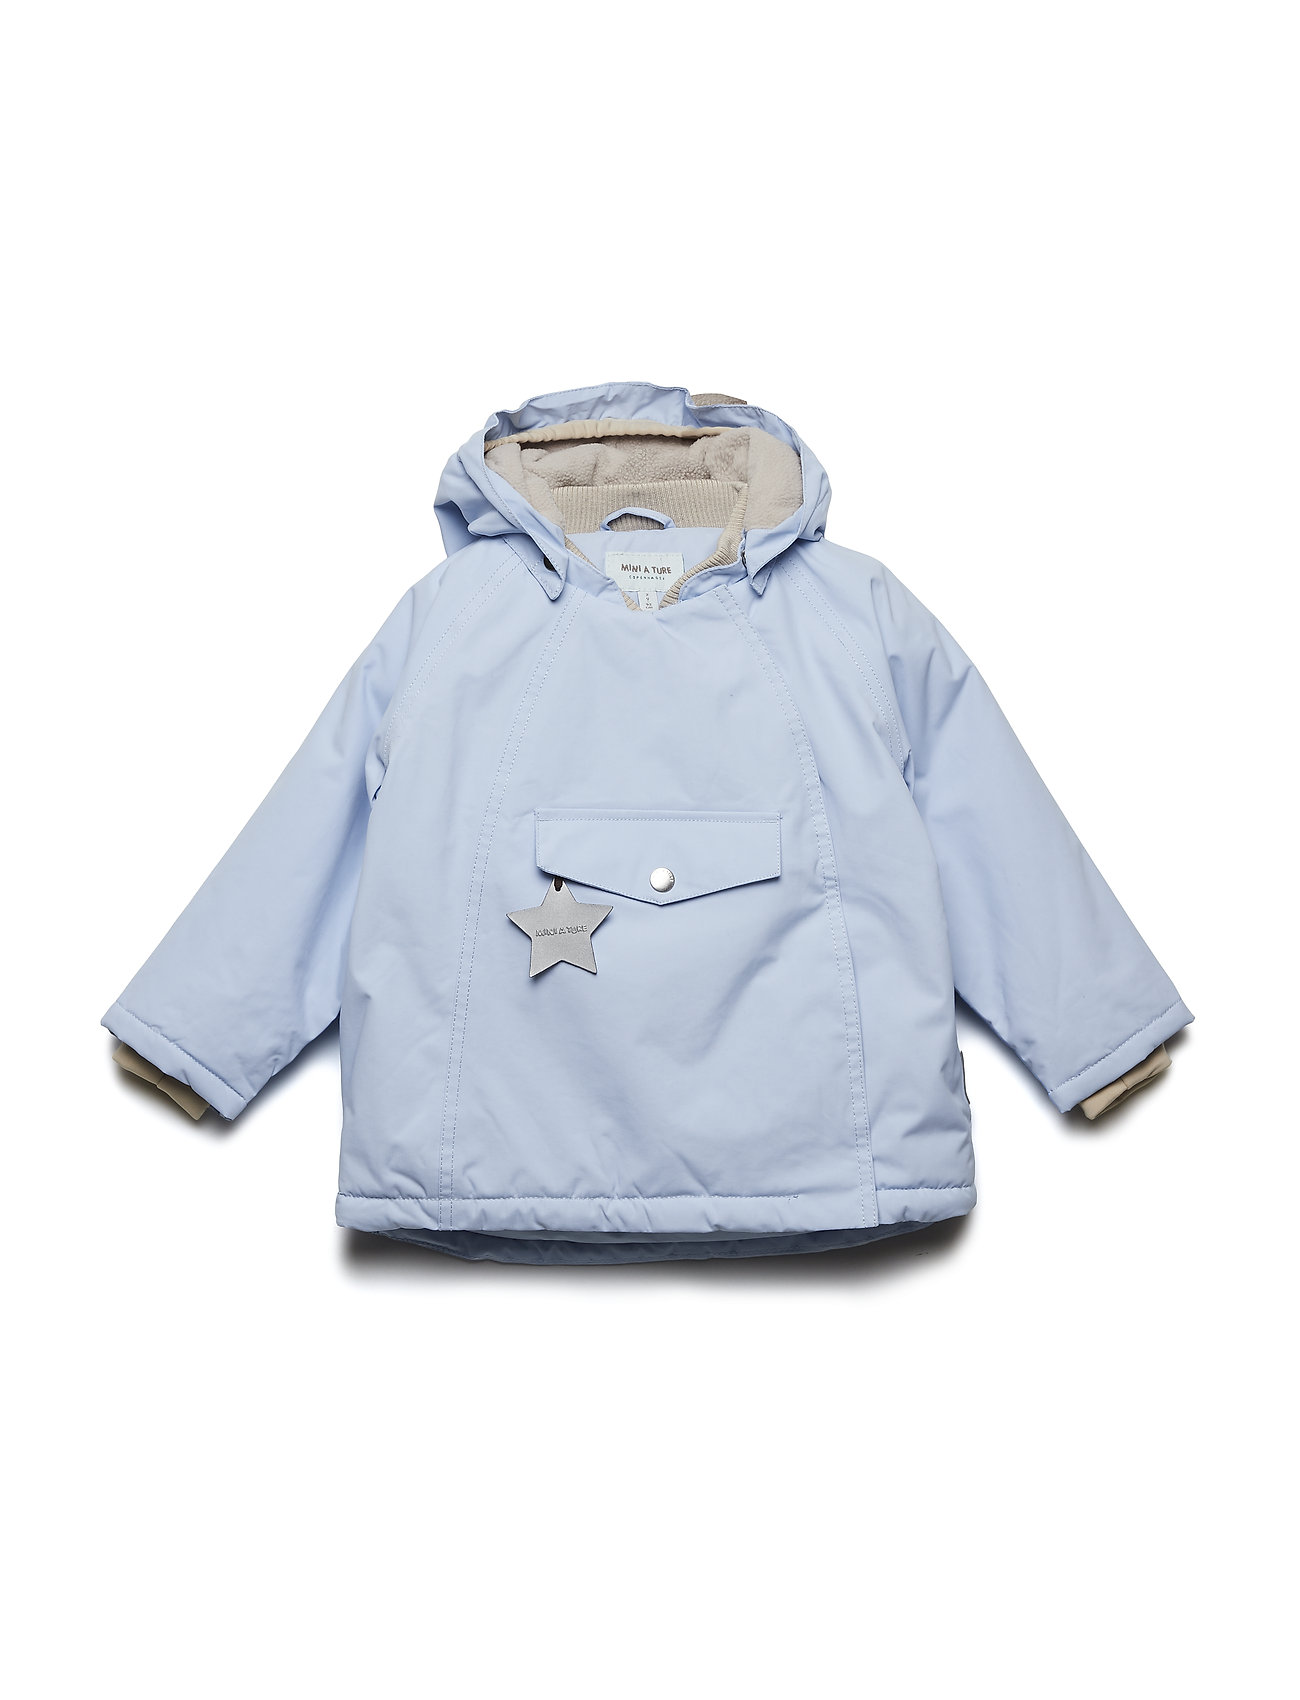 Mini A Ture Wang Jacket, M - CASHMERE BLUE